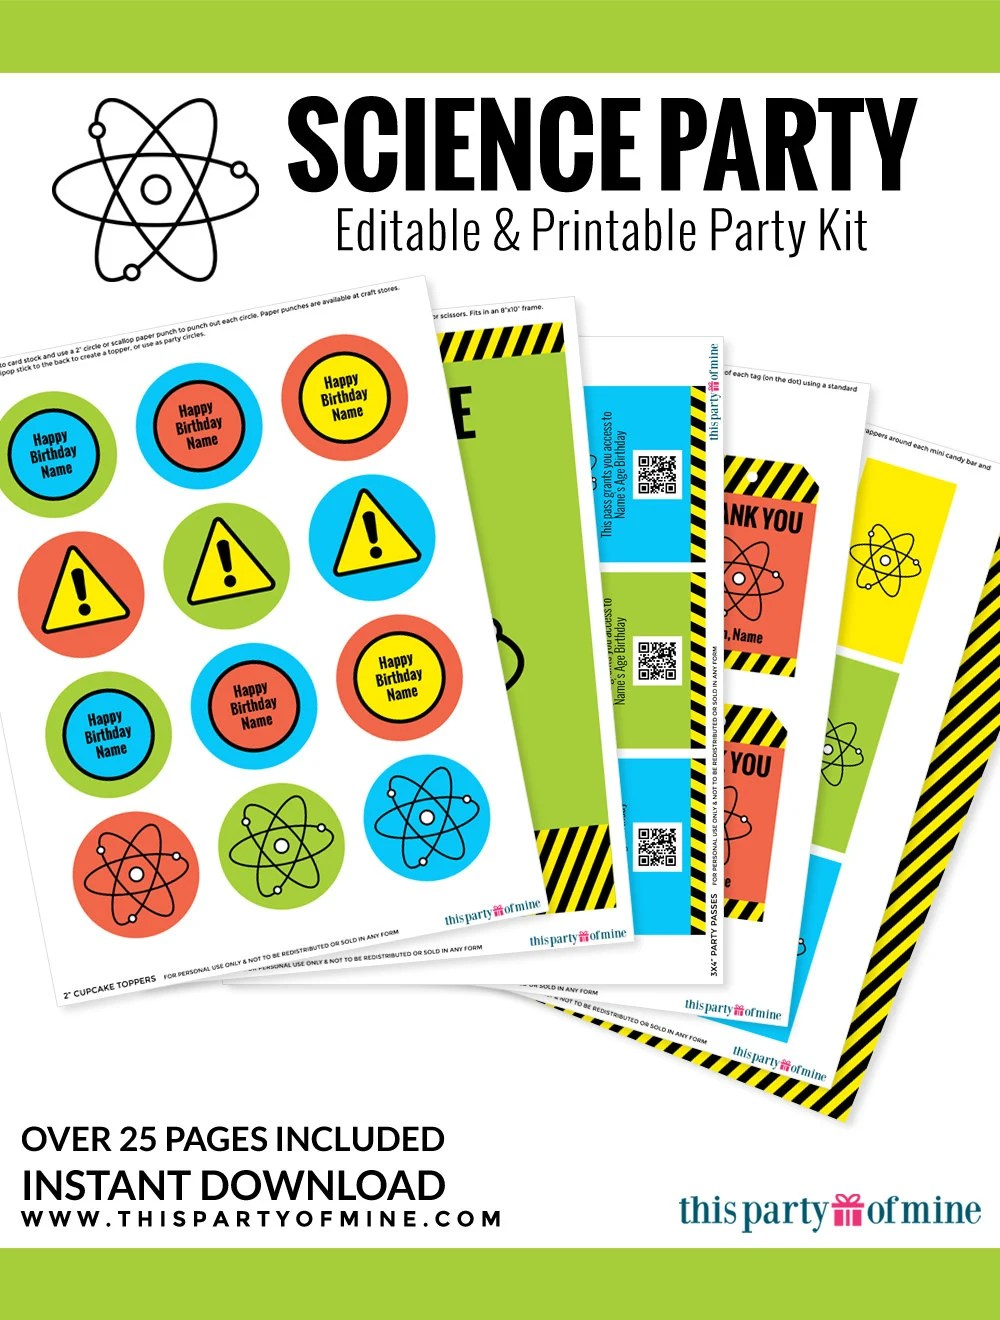 Science Party Invitation & Decorations Kit Printable Mad